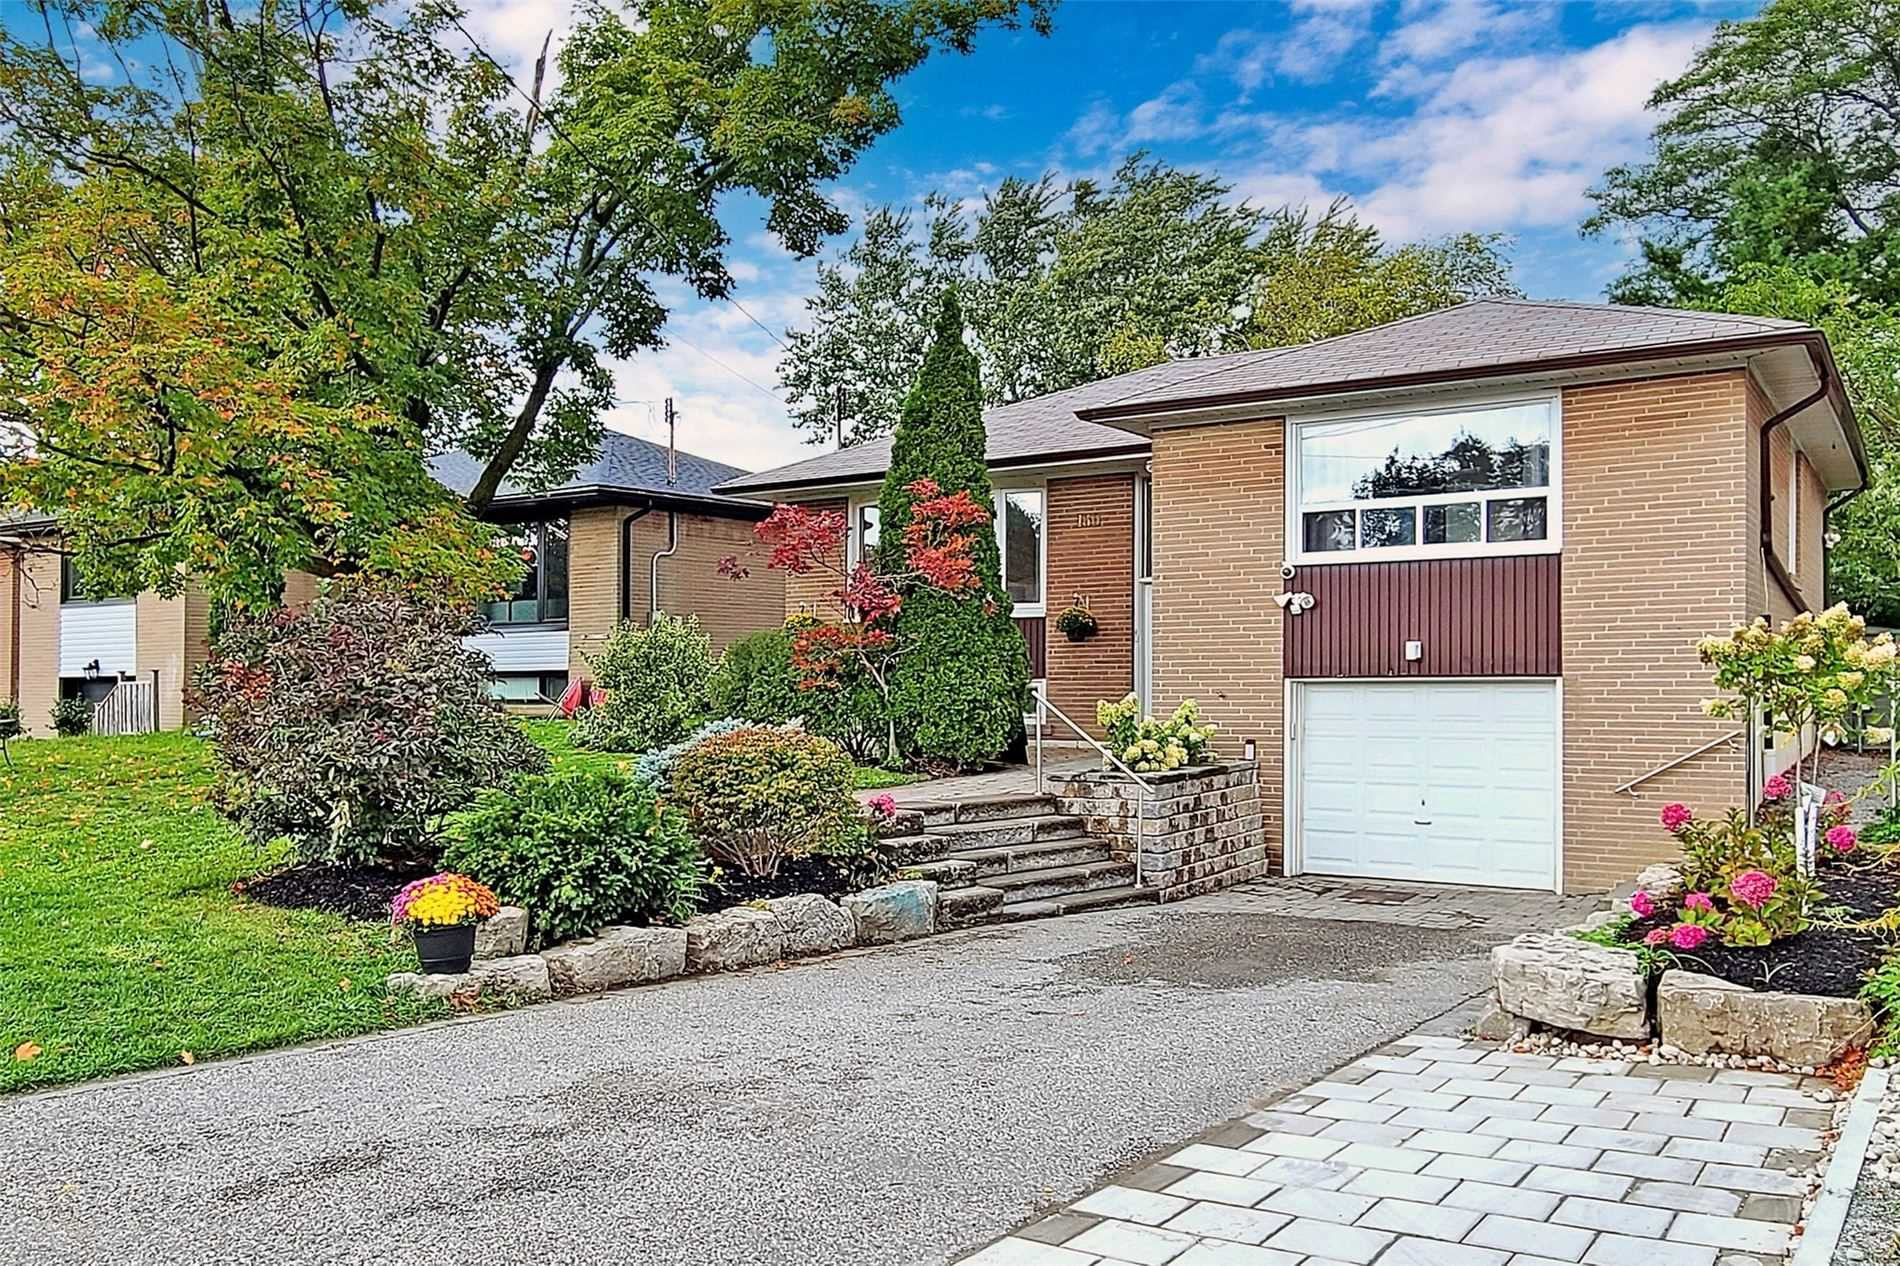 Detached house For Sale In Toronto - 180 Acton Ave, Toronto, Ontario, Canada M3H4H5 , 3 Bedrooms Bedrooms, ,3 BathroomsBathrooms,Detached,For Sale,Acton